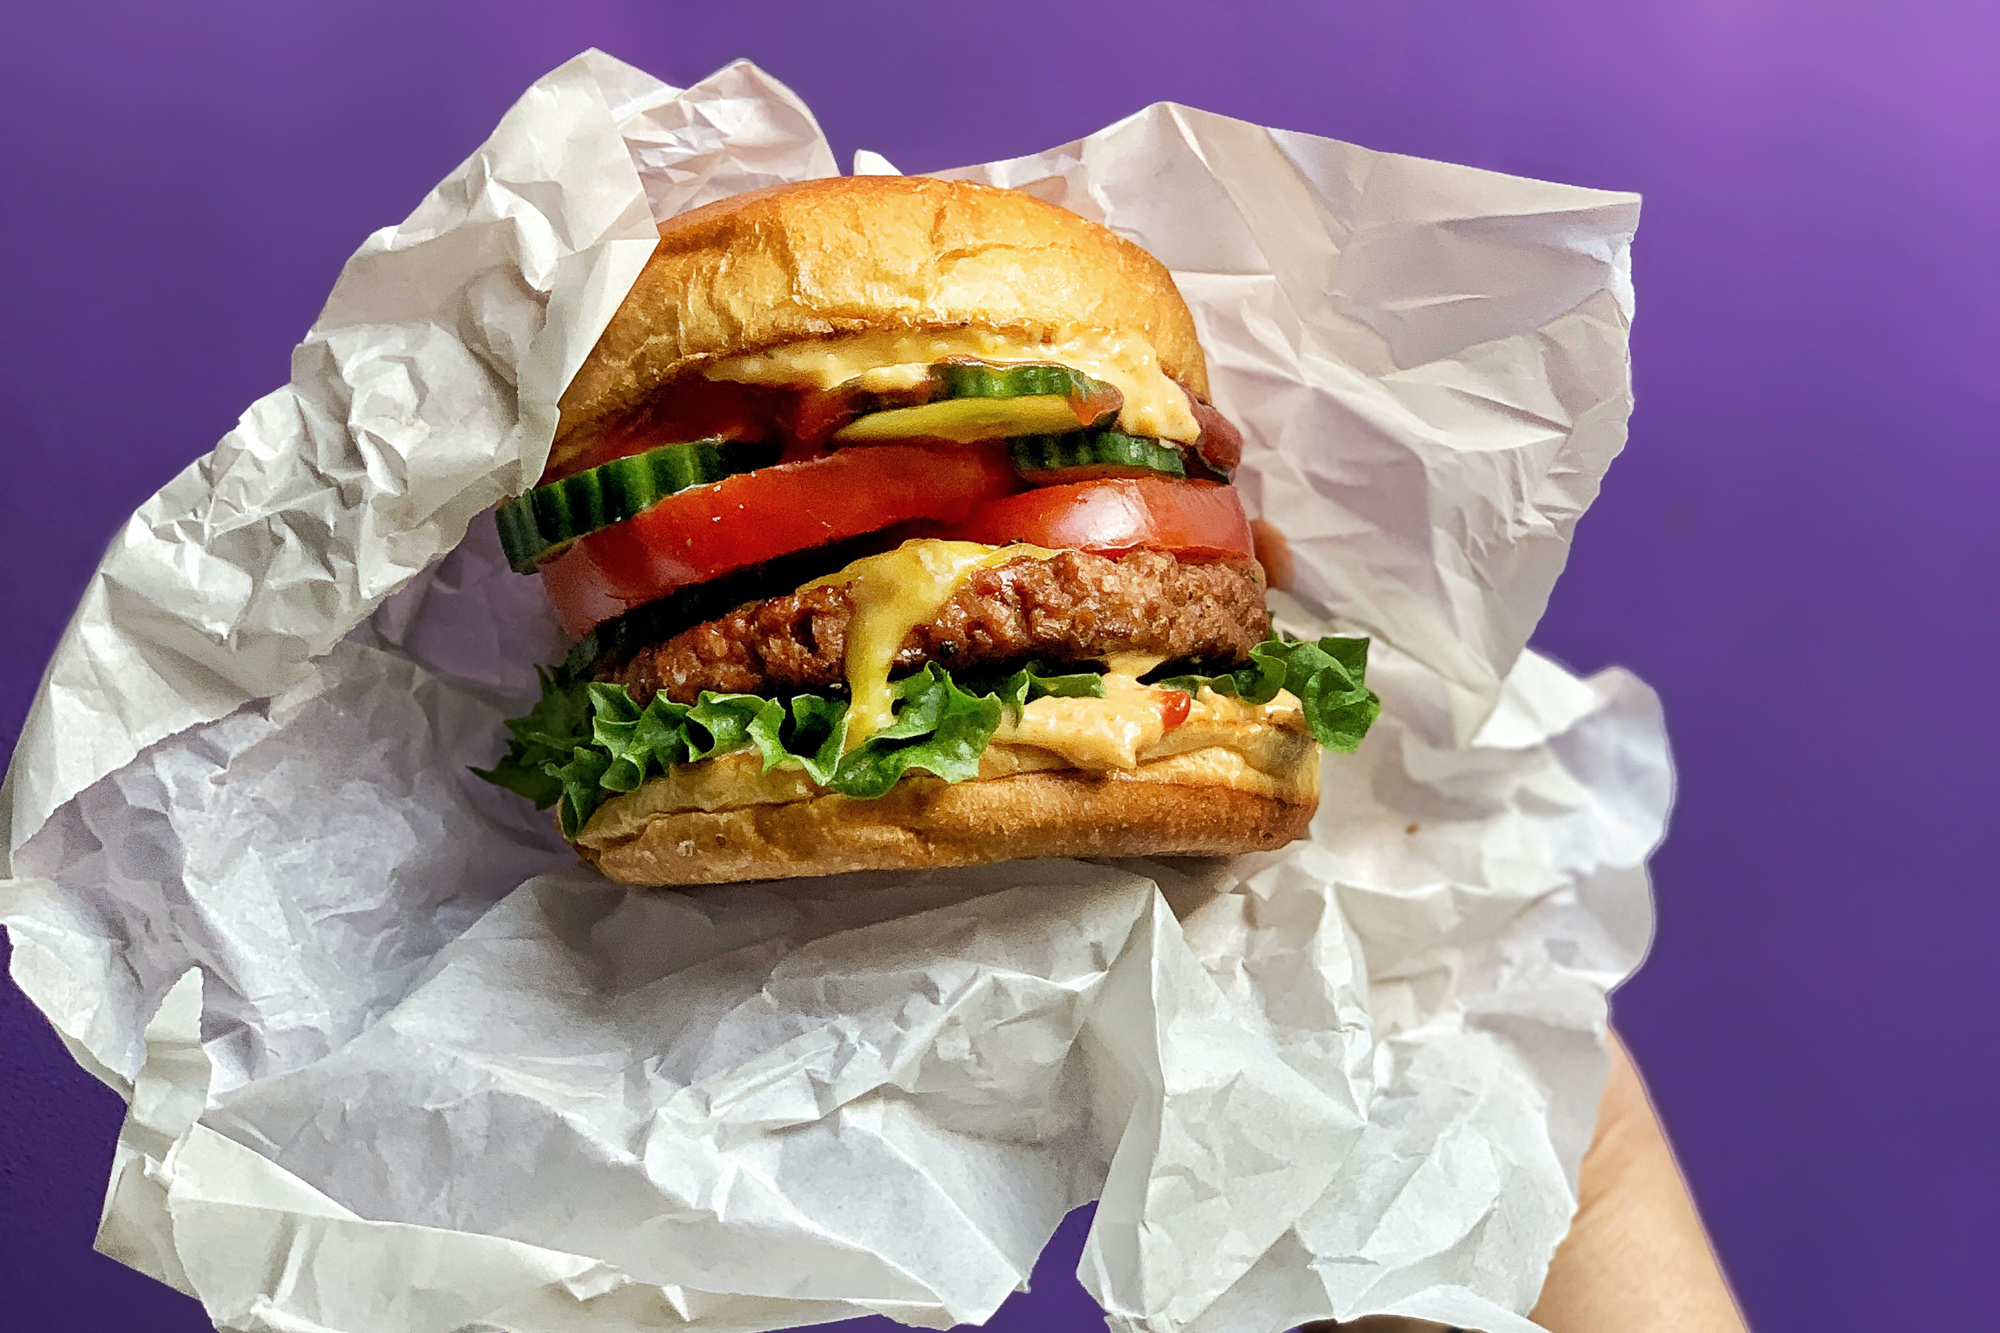 LikeMeat burger in white paper being held in front of a purple background